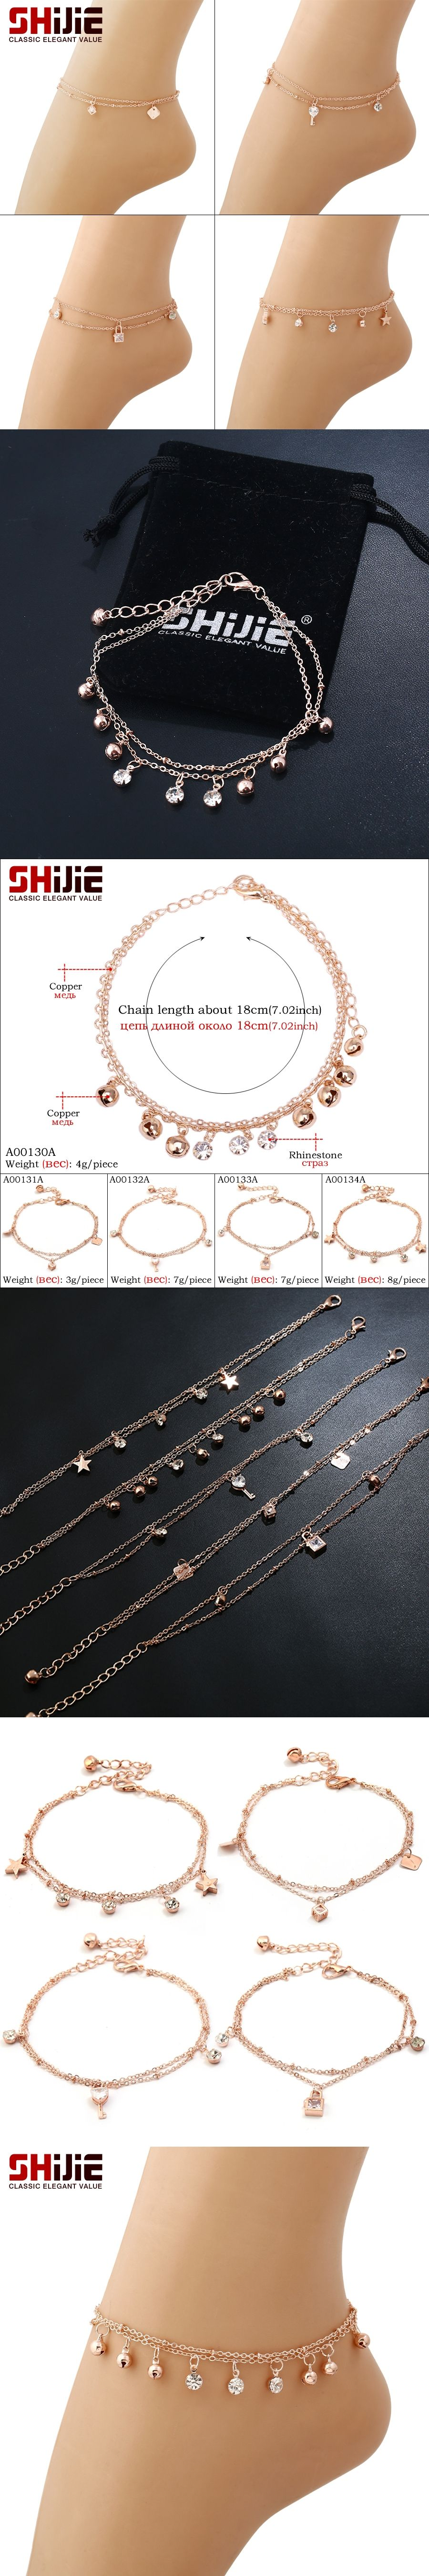 anklets silver red online oblacoder indian elegant woman rhinestone india for women anklet studded